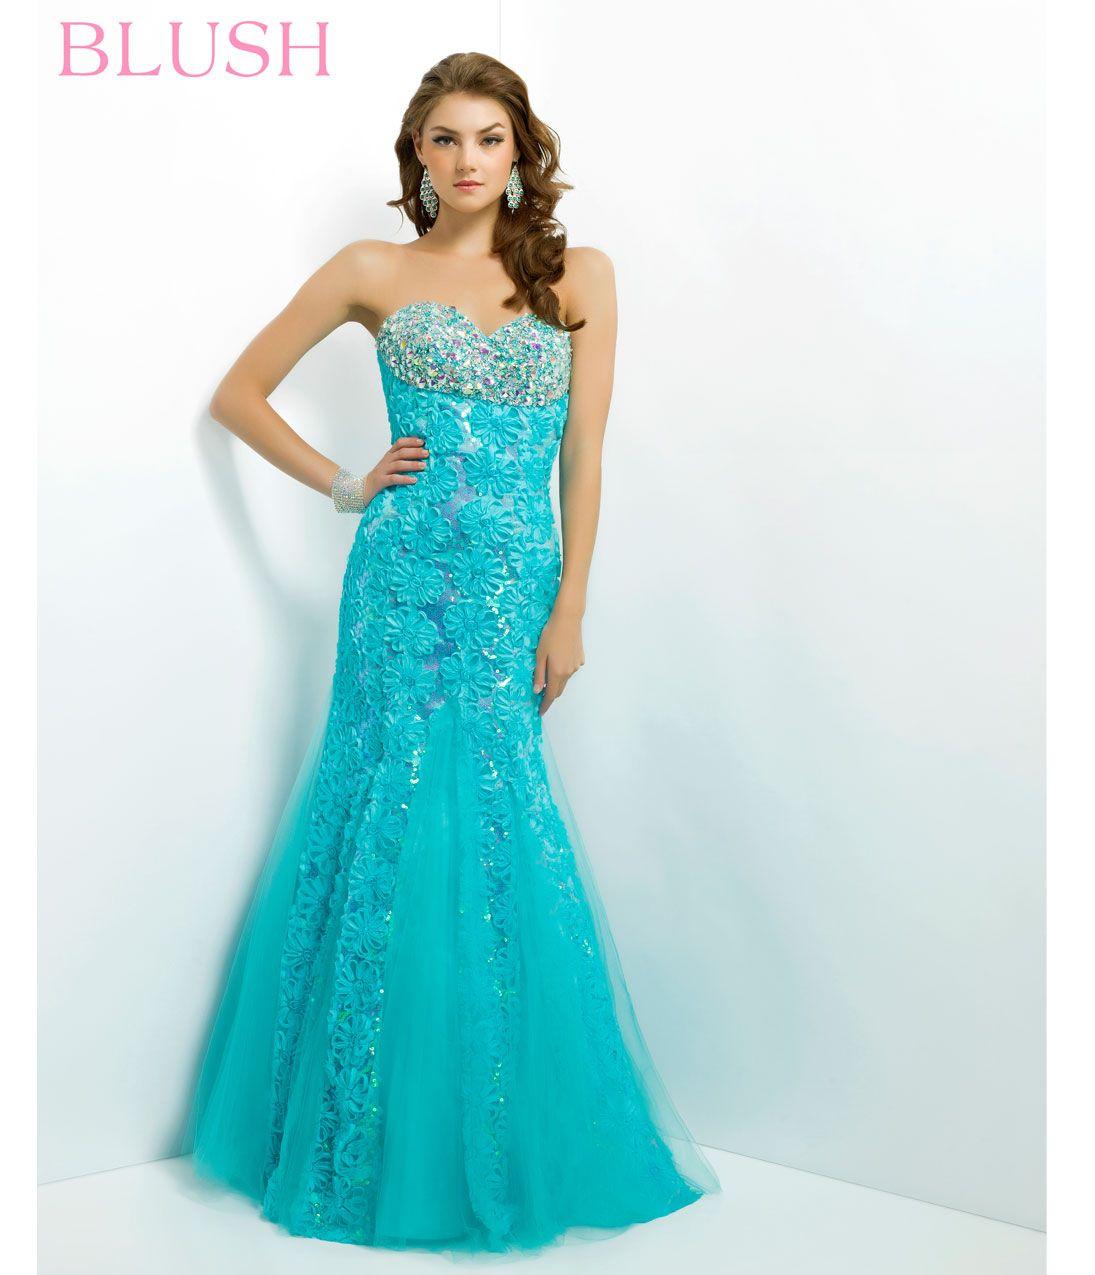 Blush 2014 Prom Dresses - Turquoise Jeweled Lace Strapless ...